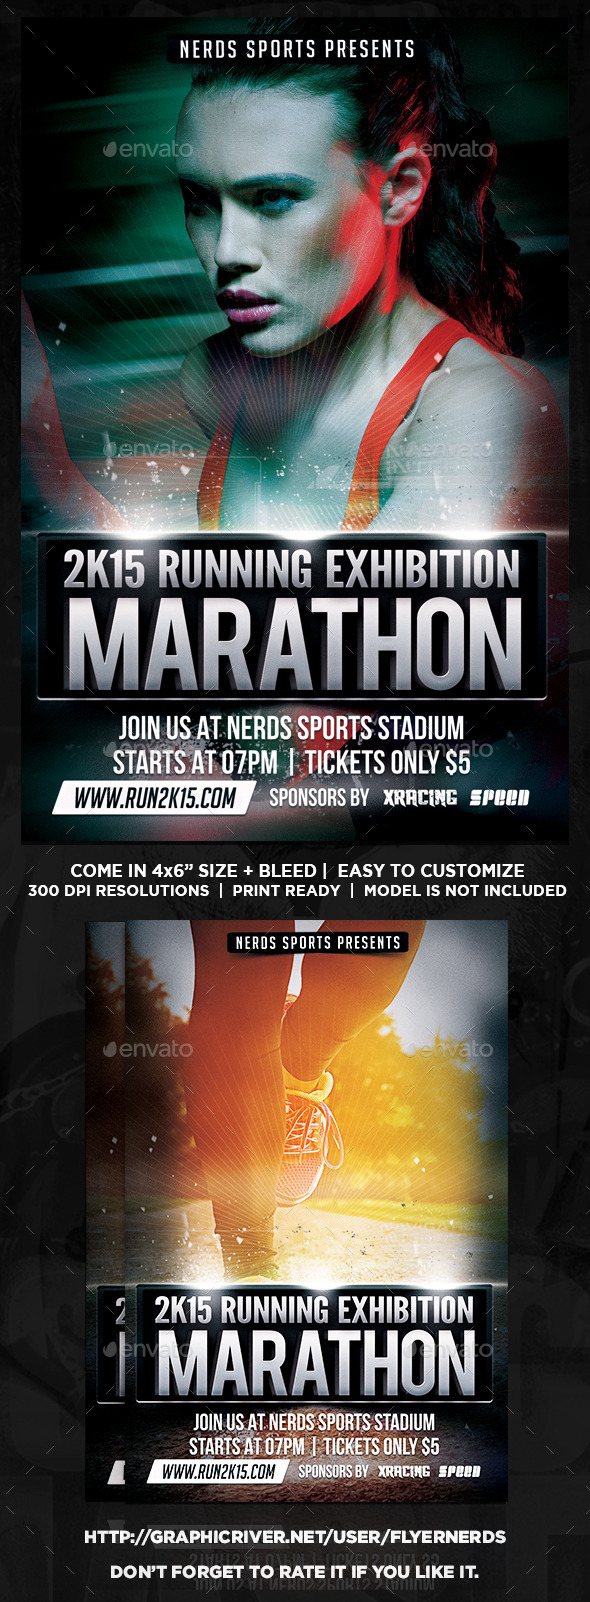 2K15 Marathon Exhibition Sport Flyer